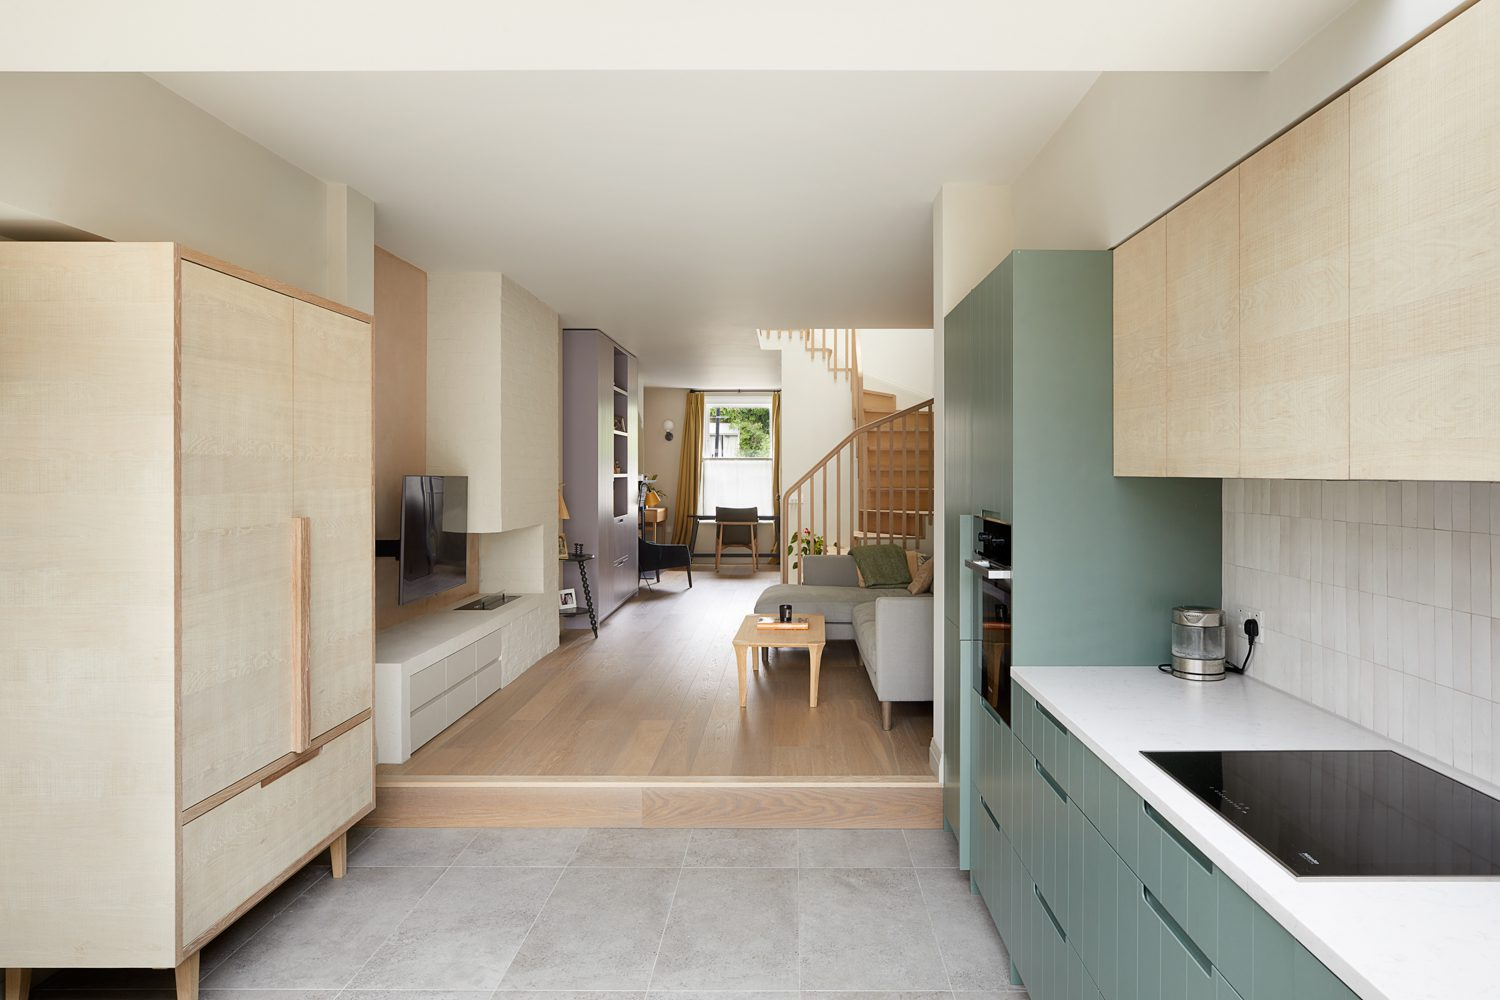 Built-in furniture on both floors makes clever use of space, complementing the open layout and providing ample storage.